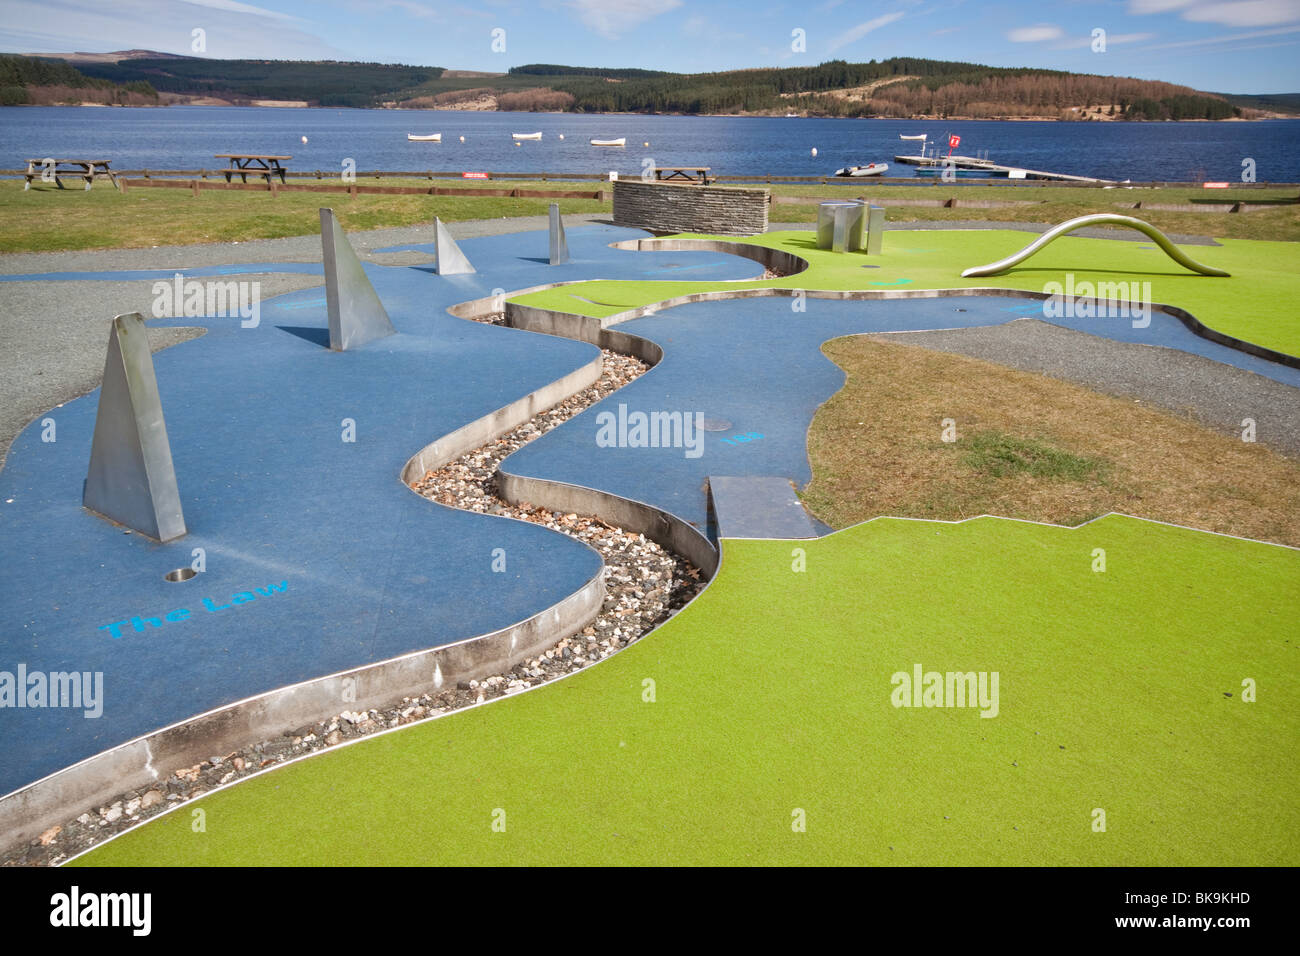 Kielder Water Mini Golf Course - 'Mapping', Designed by ... on golf course games, golf course consulting, golf course animation, golf course software, golf course media, golf course school, golf course marketing, golf course locator, geologic mapping, golf course simulation, golf course food, golf course home, golf course marking, golf course tools, topographic mapping, environmental mapping, golf course safety, cemetery mapping, golf course history, pipeline mapping, golf course cad, golf course irrigation, golf course weed identification, golf course transportation, golf course development,